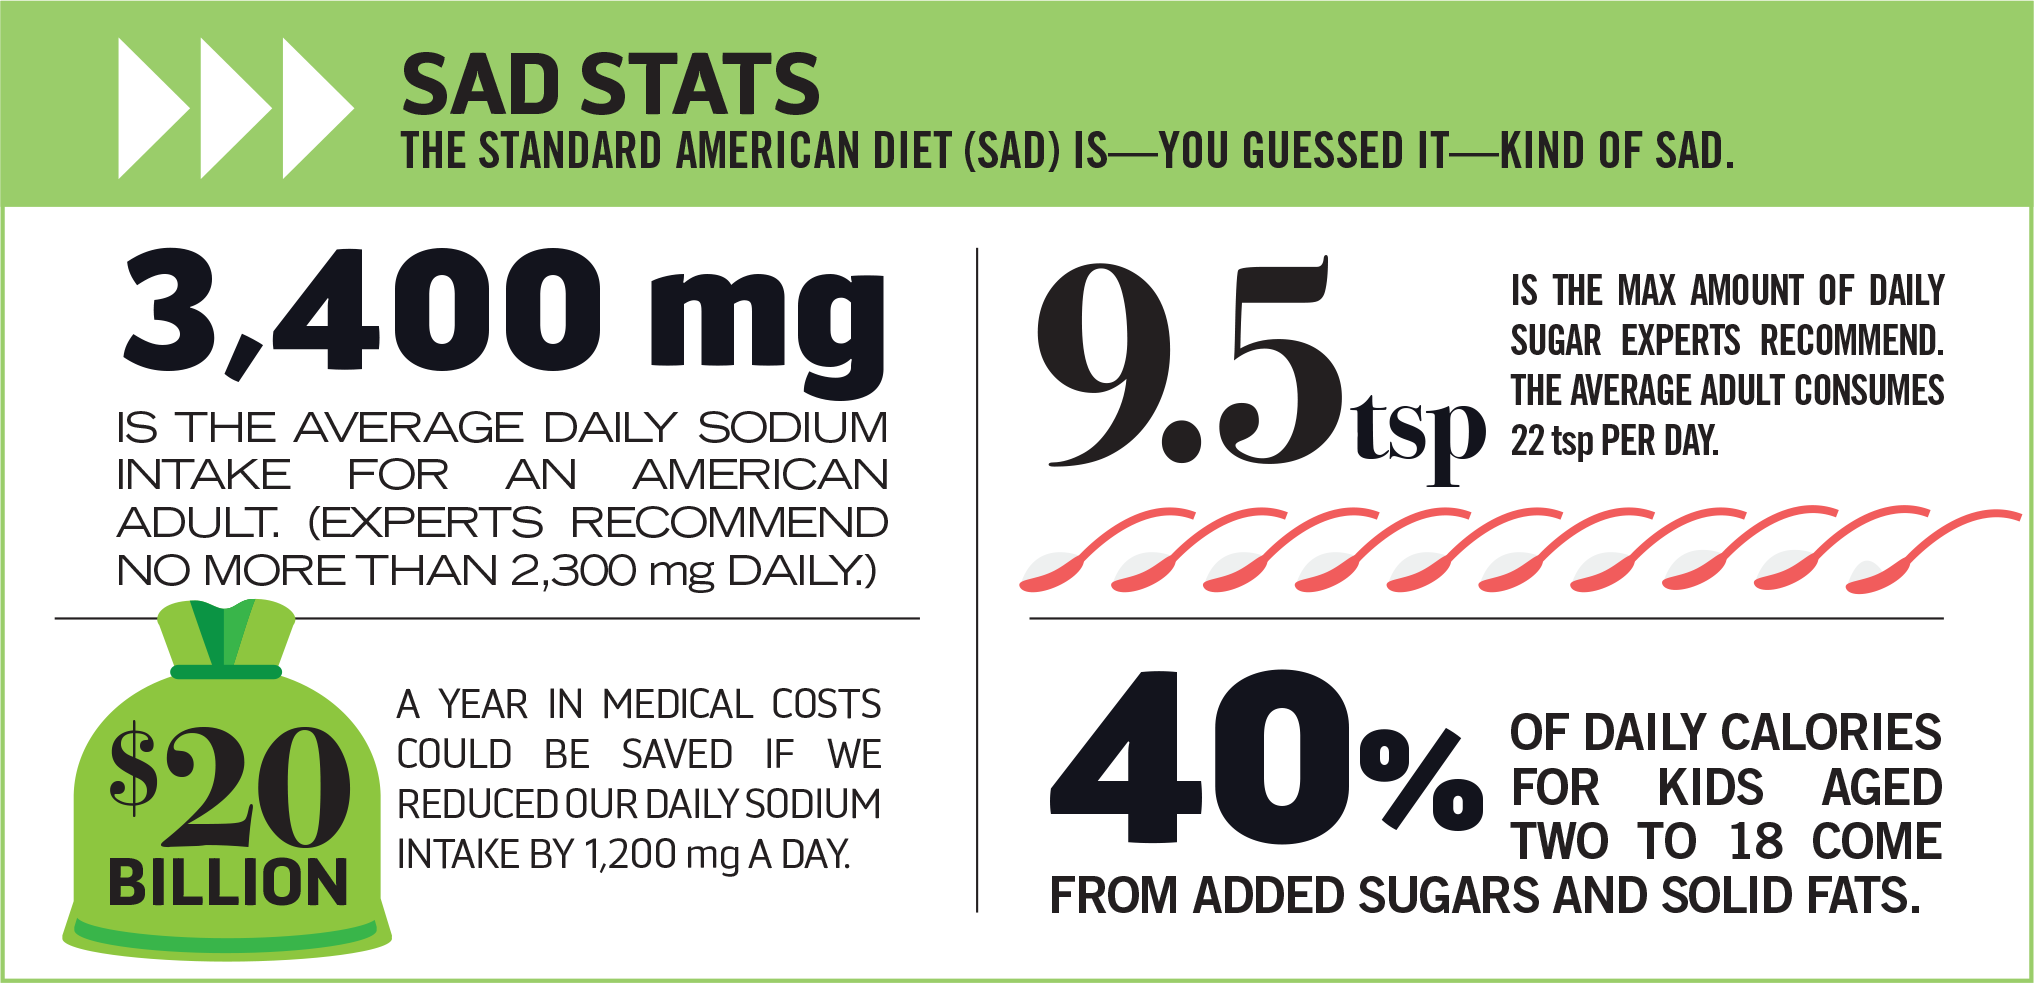 SAD stats. The standard American diet (SAD) is—you guessed it—kind of sad. 3,400 mg is the average daily sodium intake for an American adult. (Experts recommend no more than 2,300 mg daily.) 9.5 tsp is the max amount of daily sugar experts recommend. The average adult consumes 22 tsp per day. $20 billion a year in medical costs could be saved if we reduced our daily sodium intake by 1,200 mg a day. 40% of daily calories for kids aged two to 18 come from added sugars and solid fats.